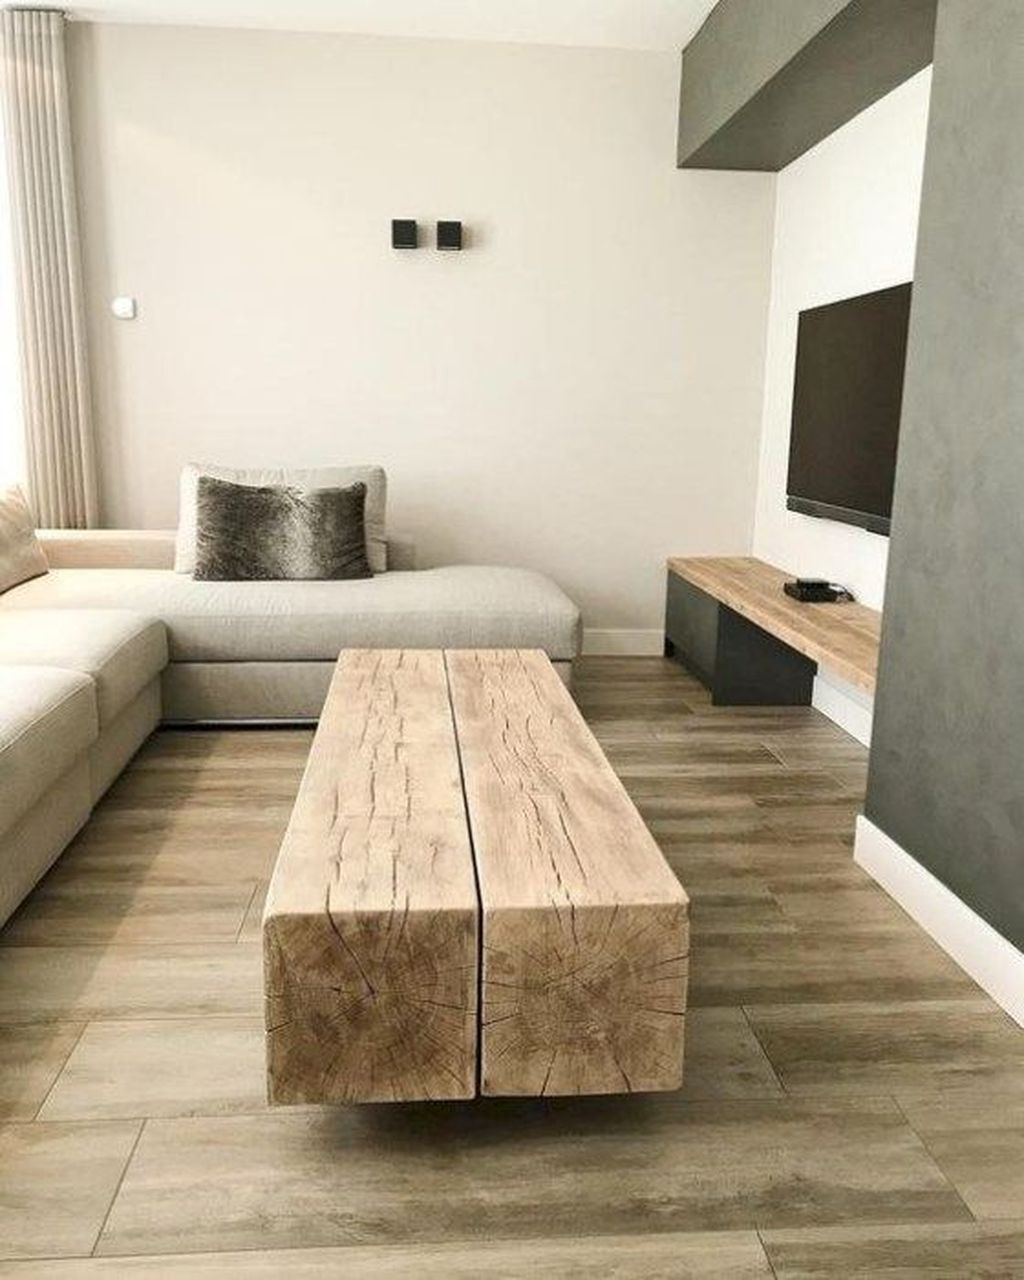 Best Wooden Furniture Design Ideas To Decorate Your Home 38